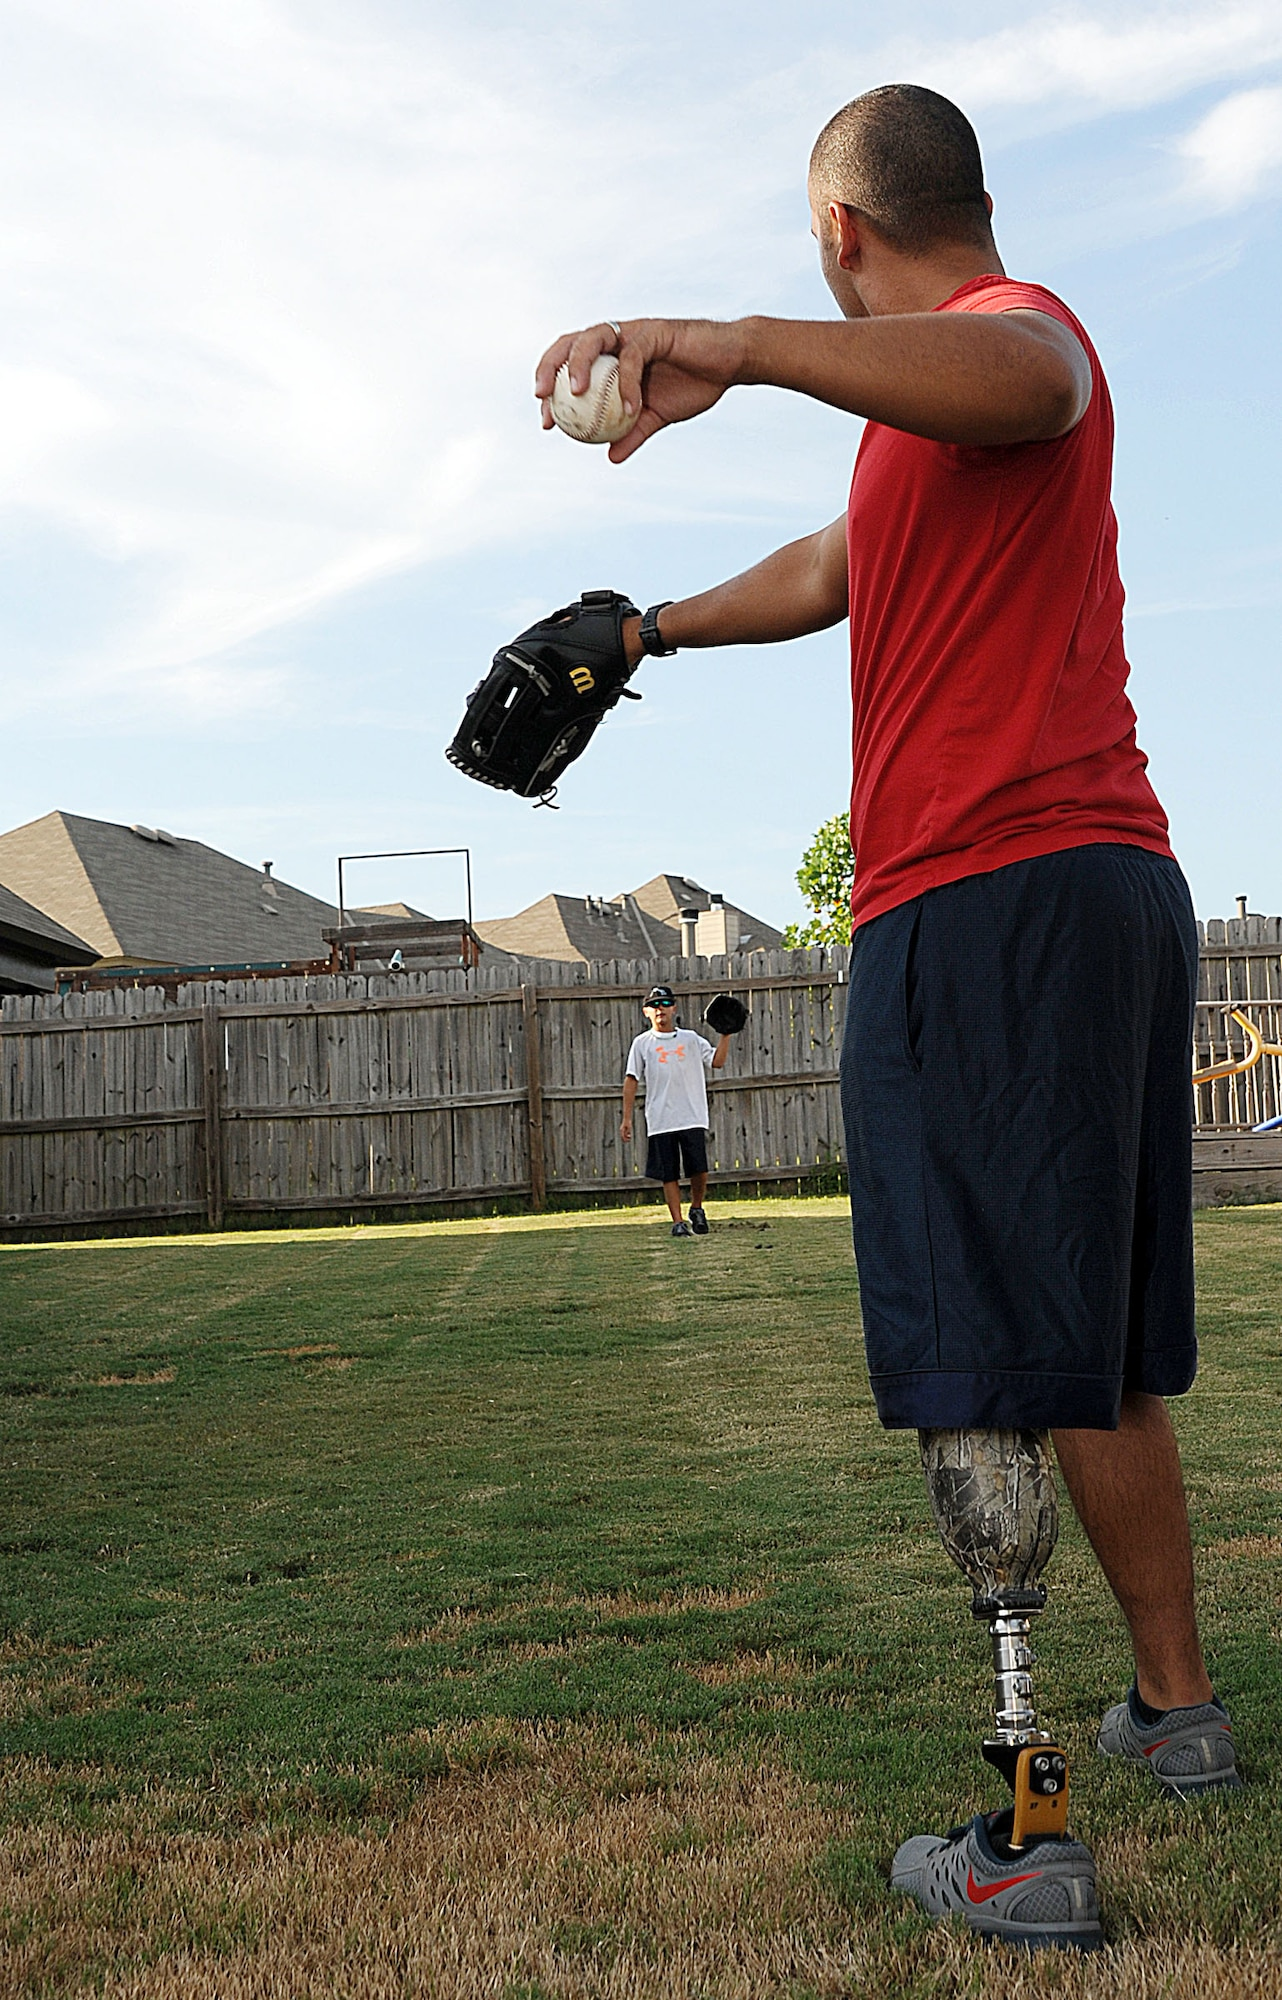 Staff Sgt. Rey Edenfield plays catch with his son, Dawson, Aug. 28, 2014, in the backyard of their family home. Edenfield was involved in a motorcycle accident that resulted in the family decision to amputate his left leg six inches below the knee. Edenfield's prosthetic allows him to maintain his mobility and stay on active duty as an air traffic controller at Maxwell Air Force Base, Ala. (U.S. Air Force photo/Staff Sgt. Erica Picariello)